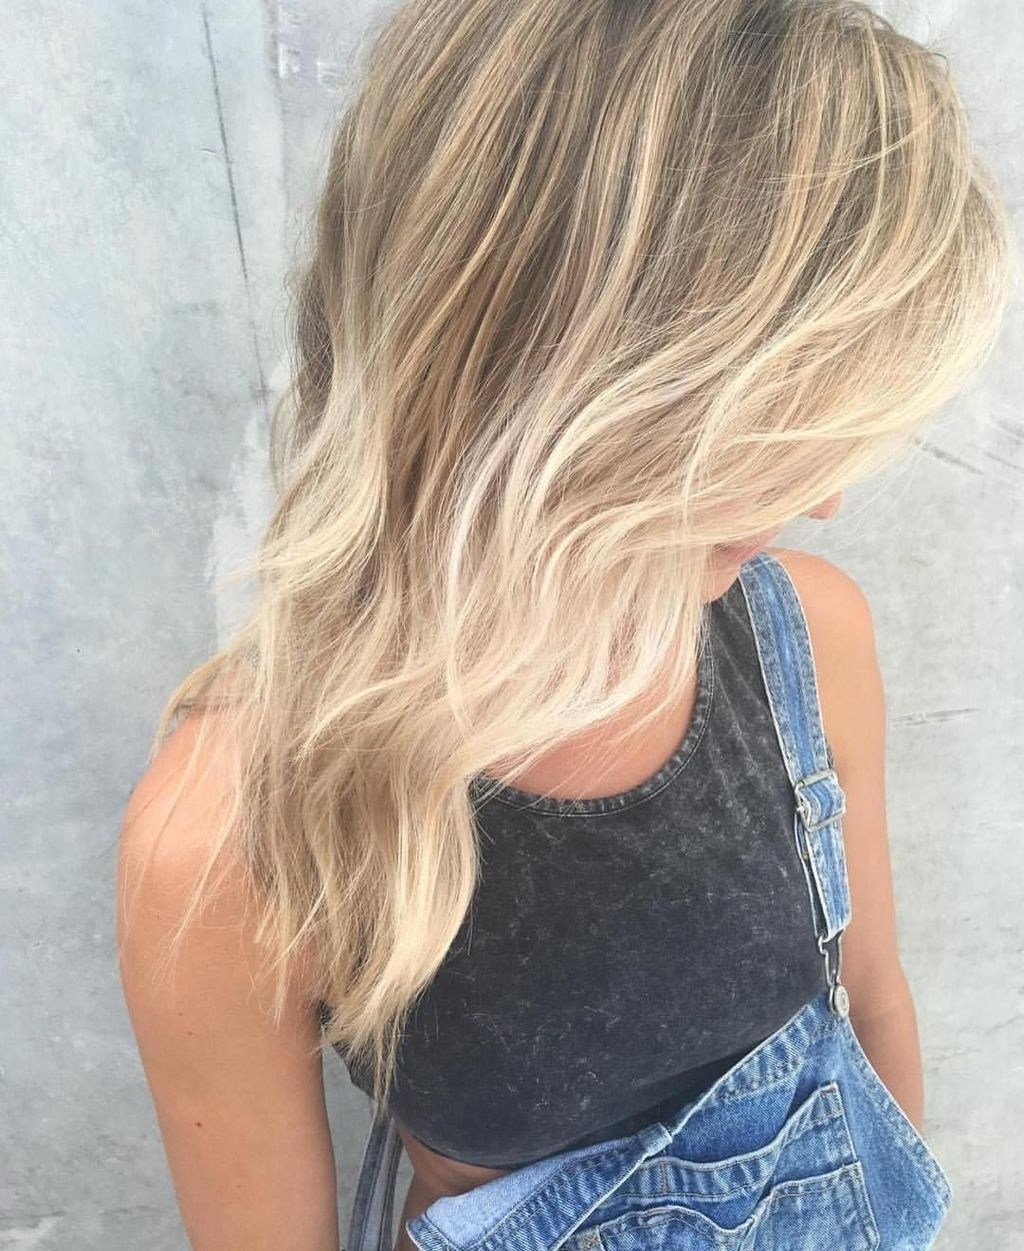 Most Current Browned Blonde Peek A Boo Hairstyles Throughout 11 Hot Blonde Balayage Hairstyle Ideas For Any Season (View 13 of 20)